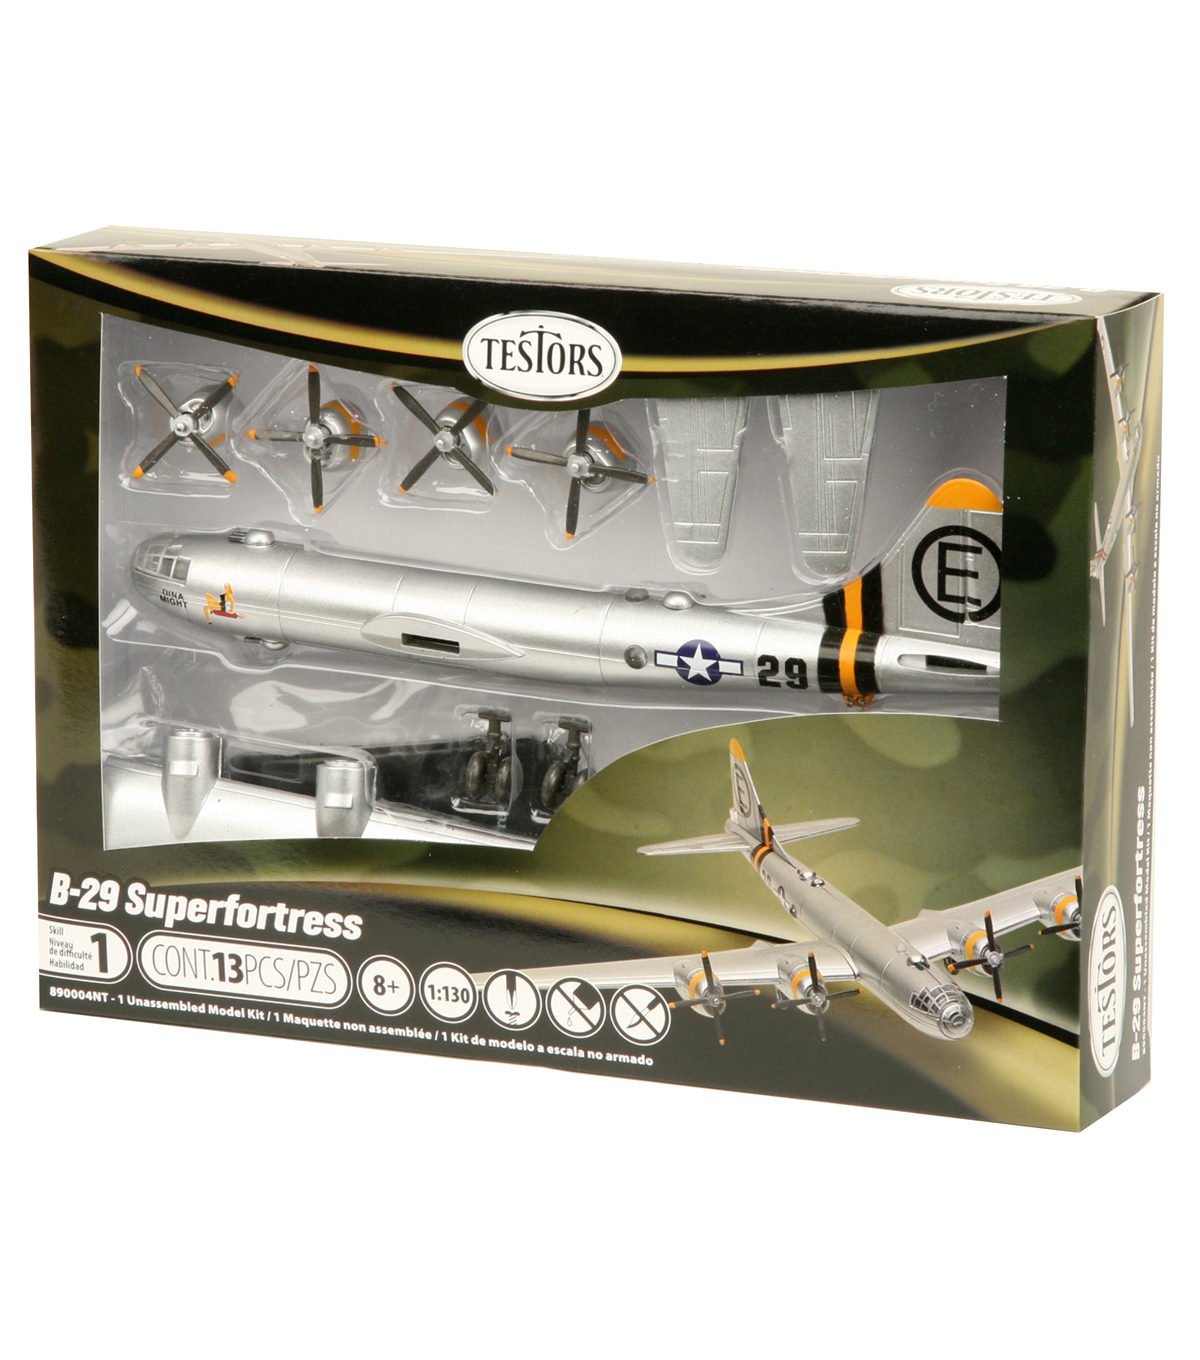 1:130 Scale B-29 Superfortress Model Kit